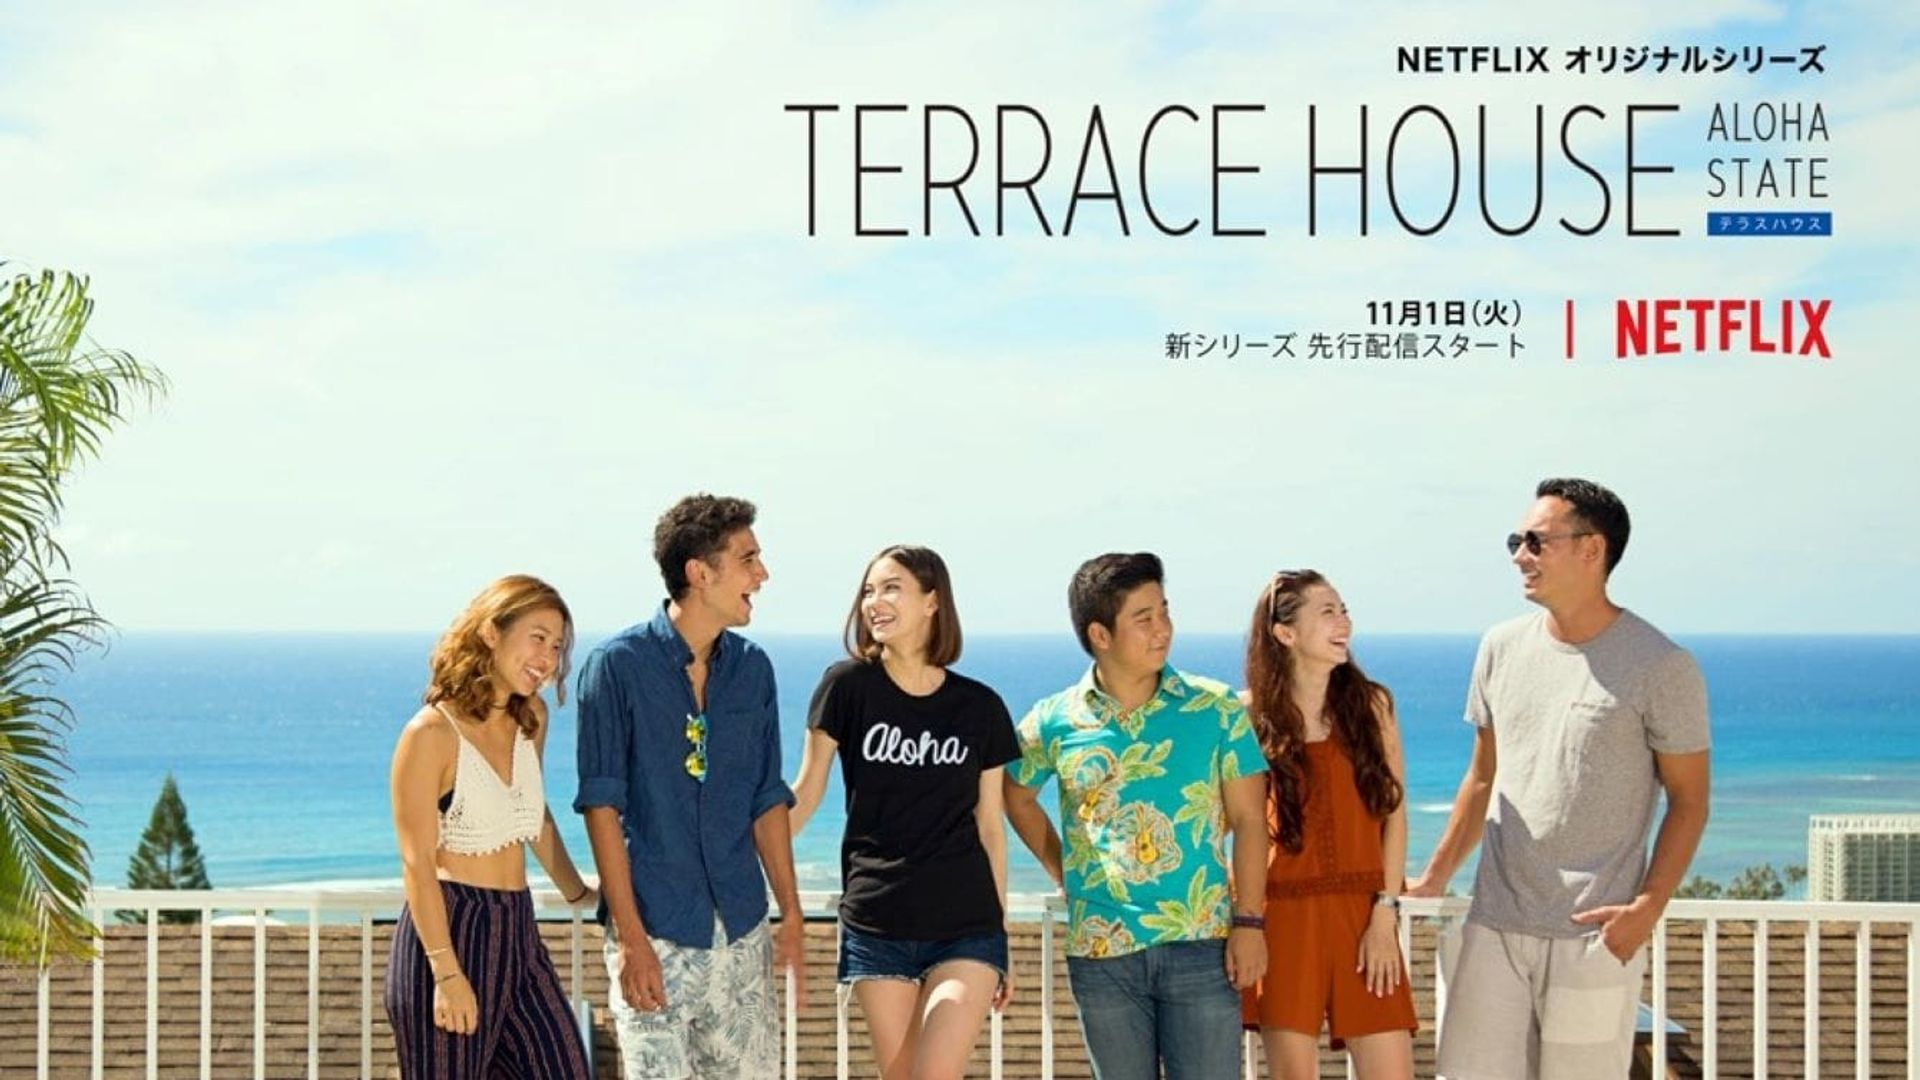 Season 01, Episode 01 Terrace House in Aloha State